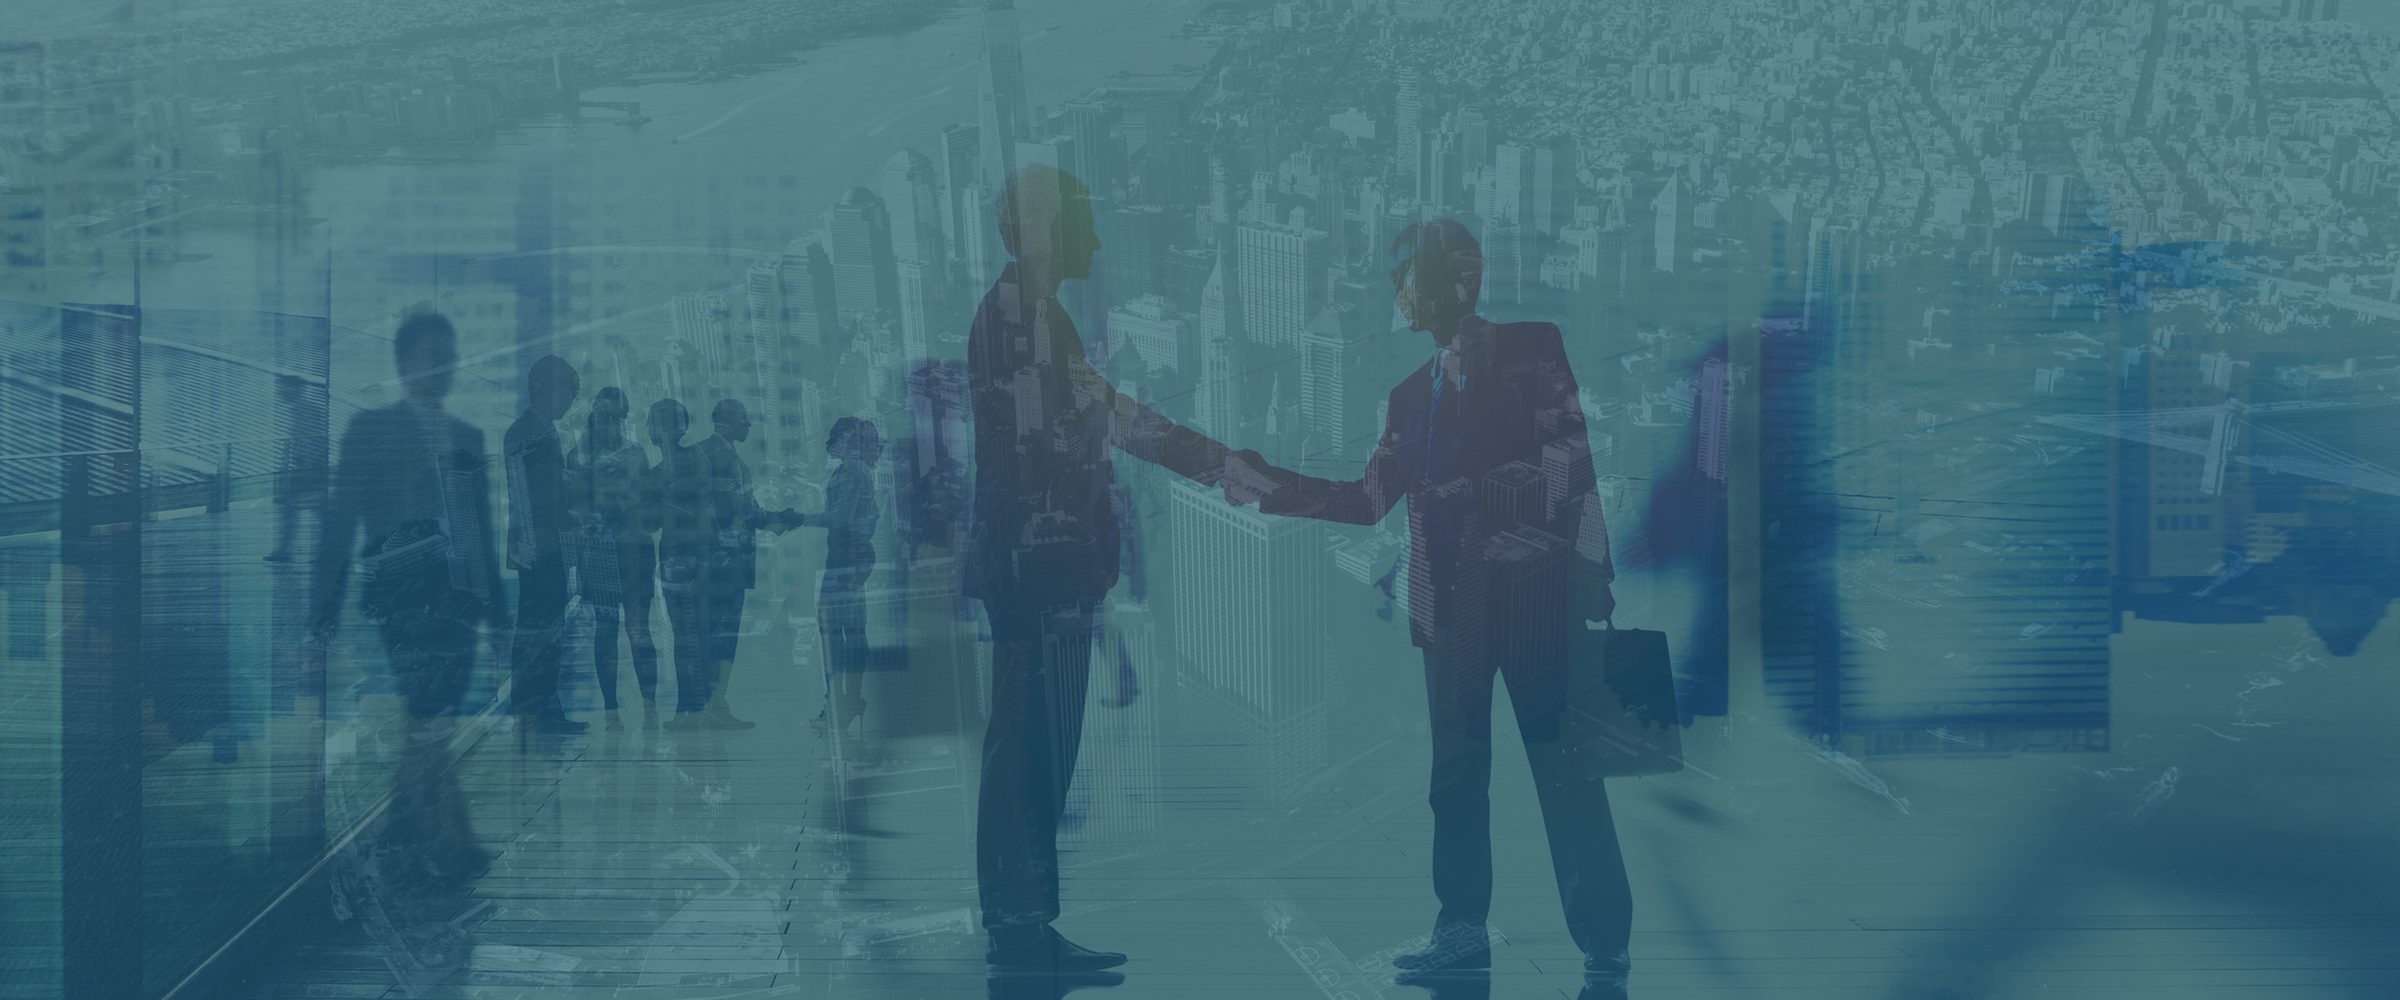 Double exposure image of two men shaking hands